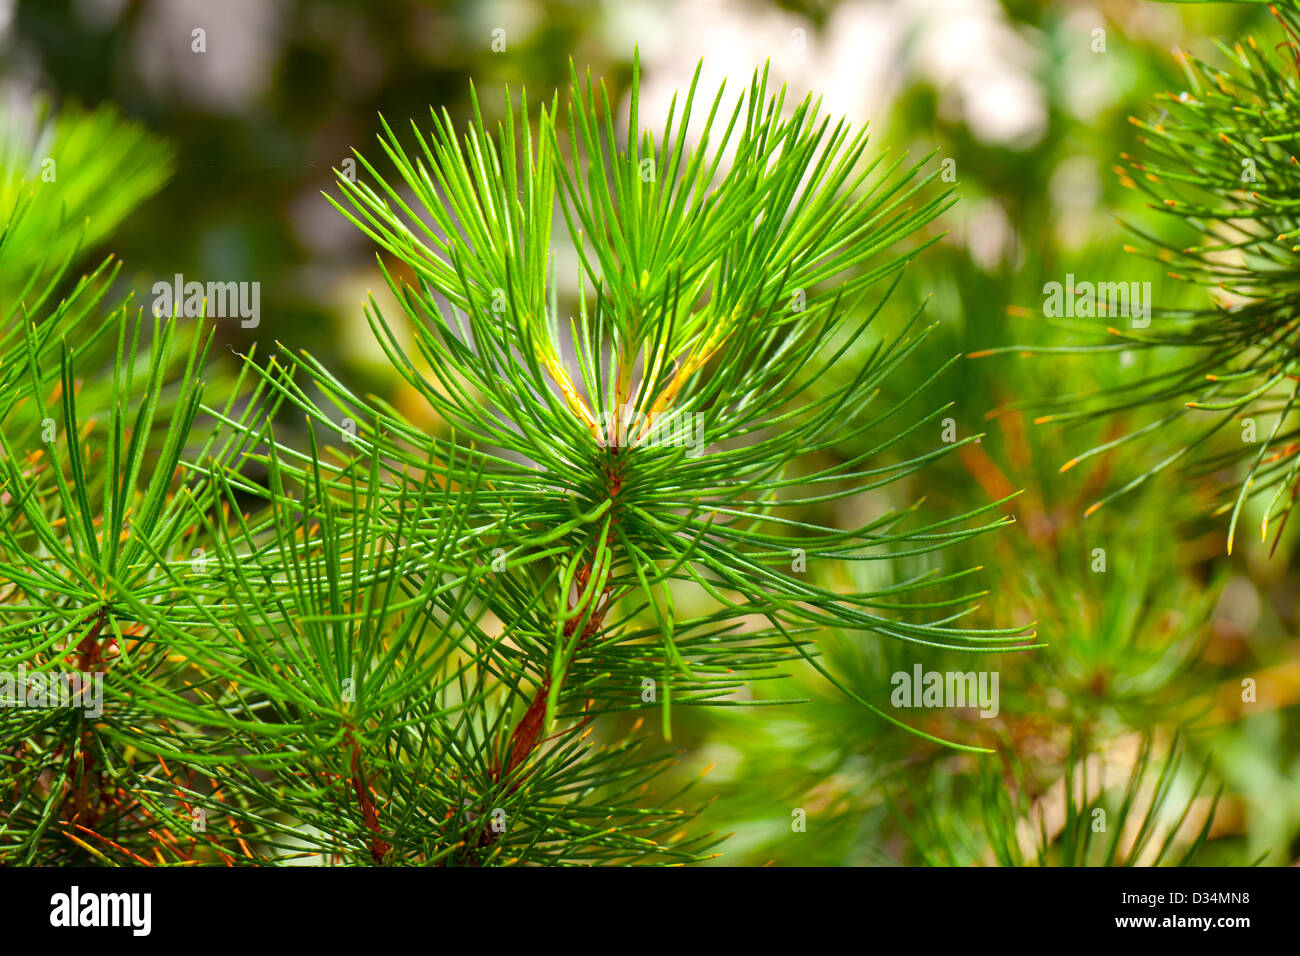 Background from conifer evergreen tree branches texture. calothamnus validus - Stock Image